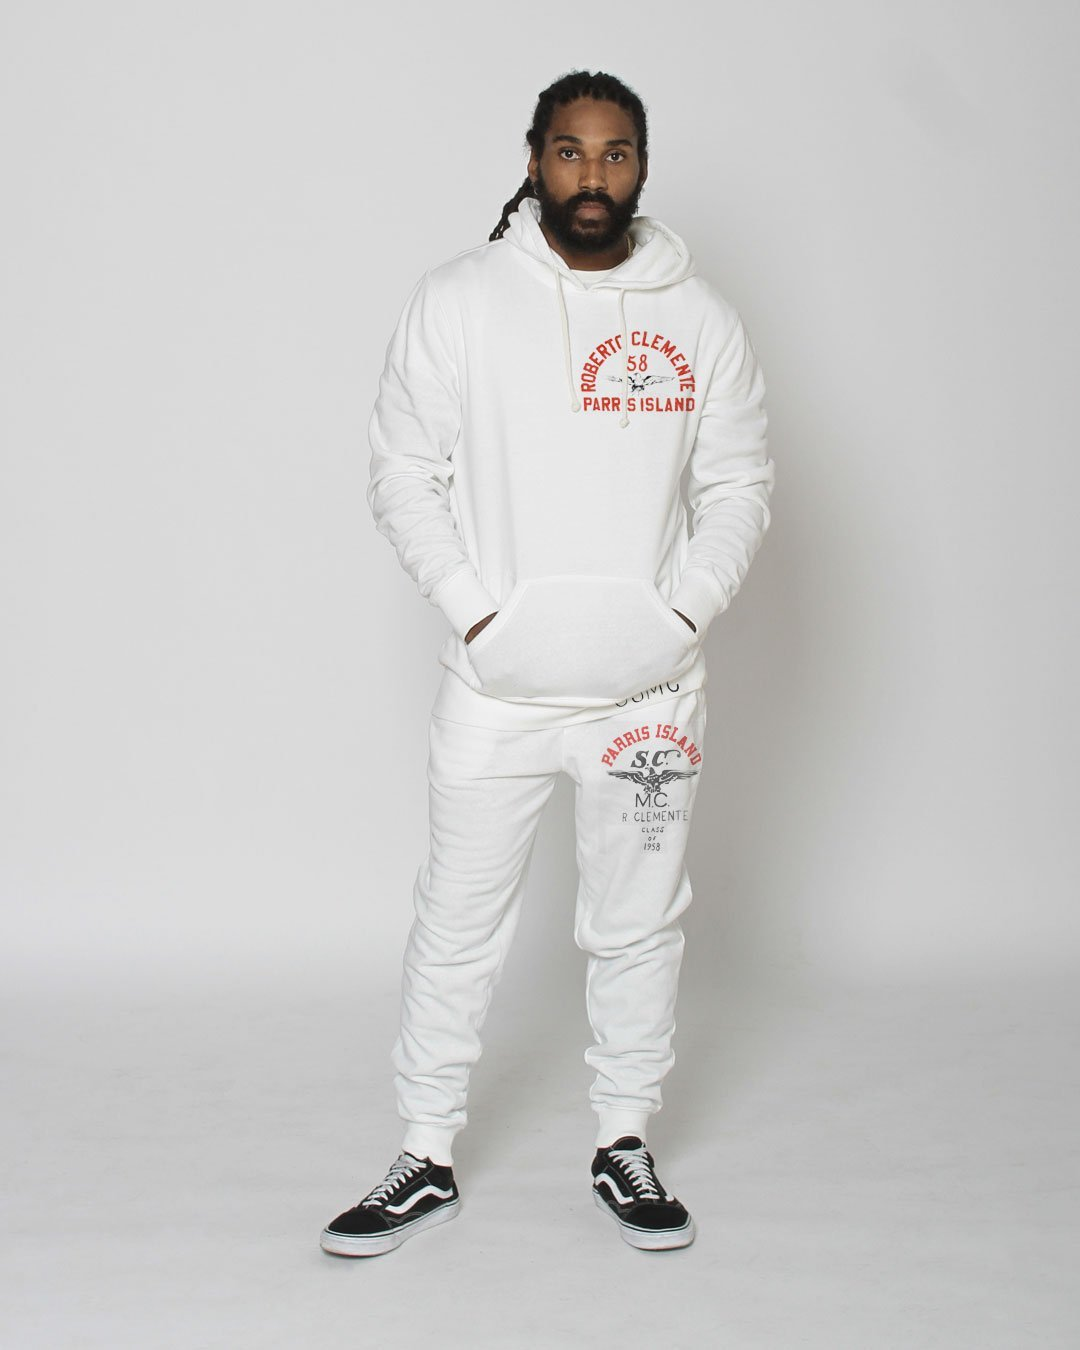 Roberto Clemente Parris Island Sweatpants - Roots of Inc dba Roots of Fight